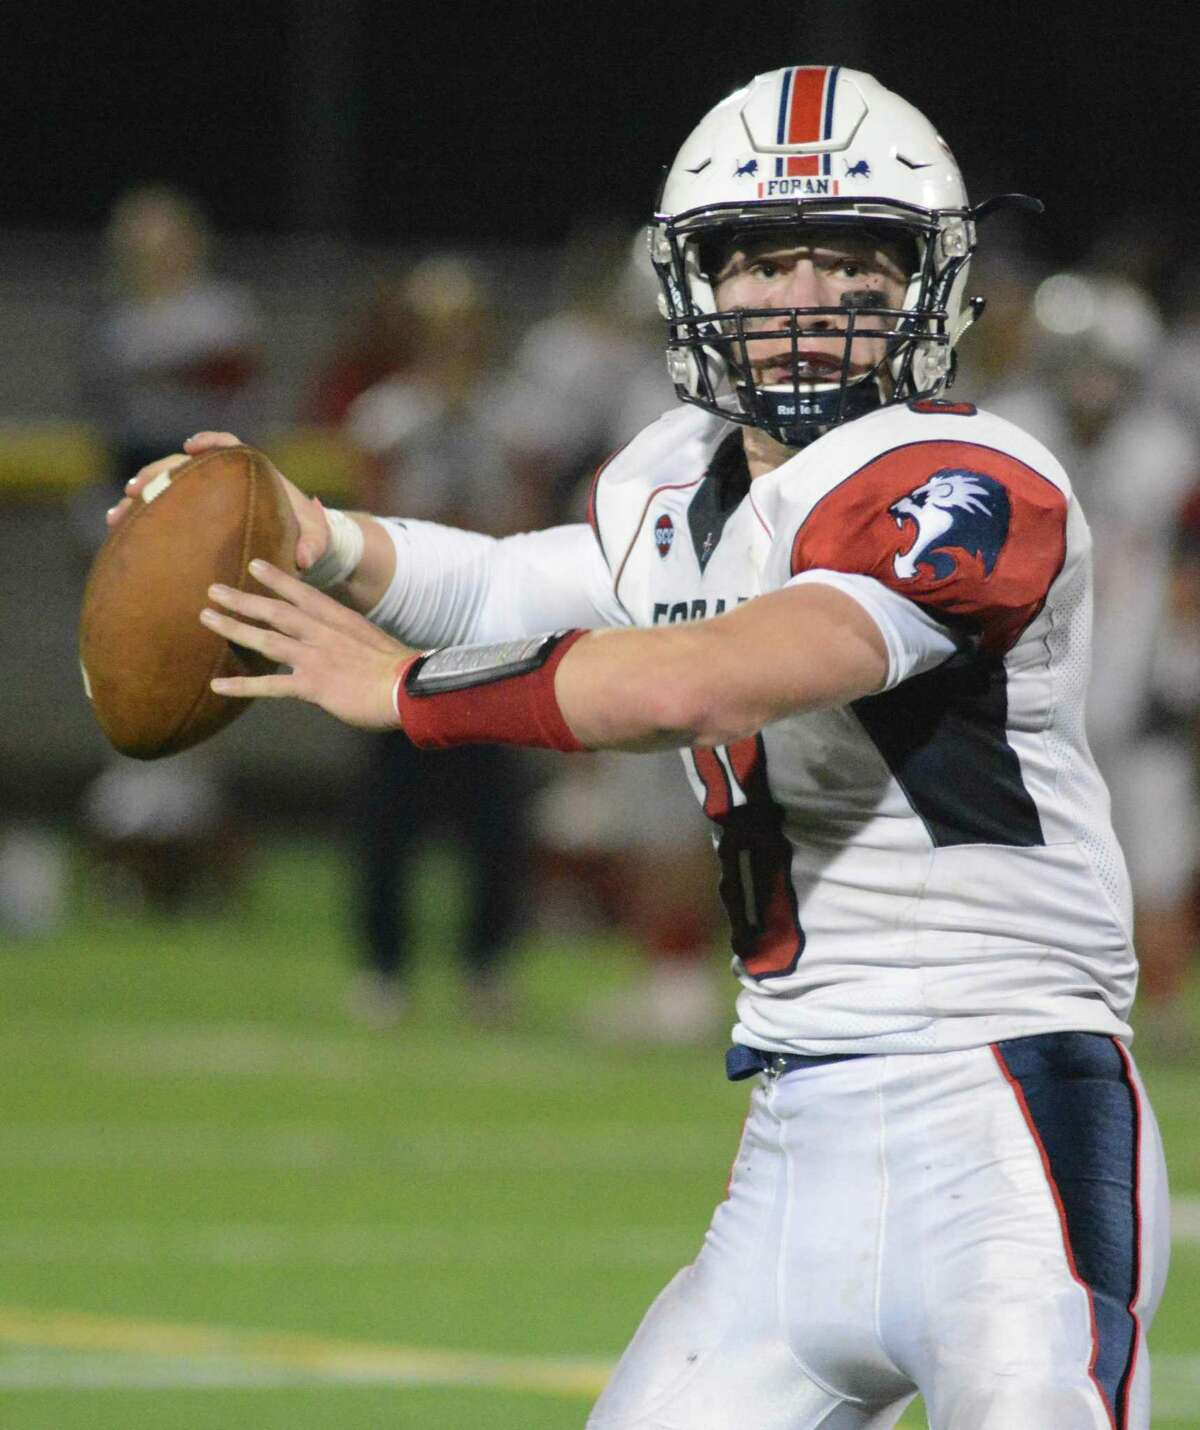 Foran'sJared Hubler drops back to pass against Hand on Friday.